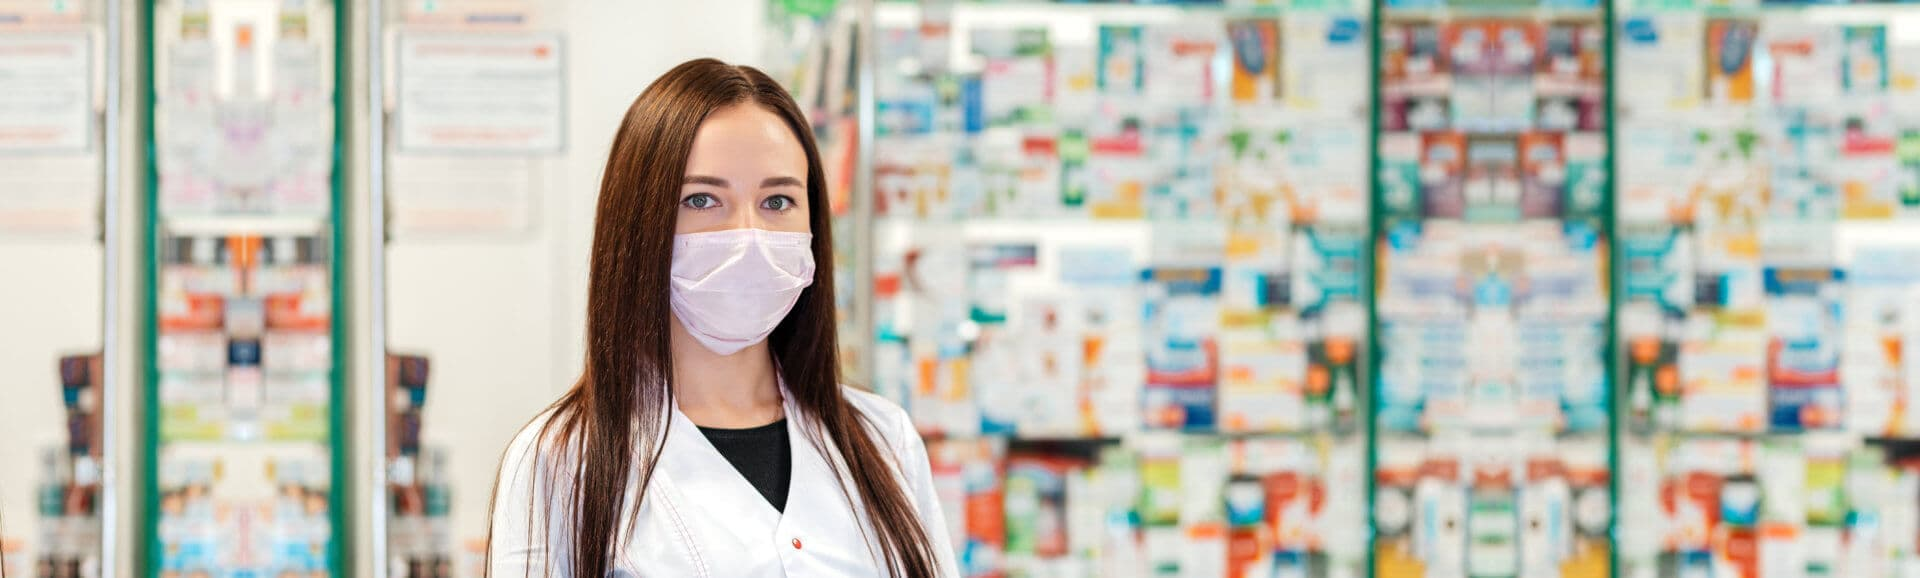 A female pharmacist in a medical mask